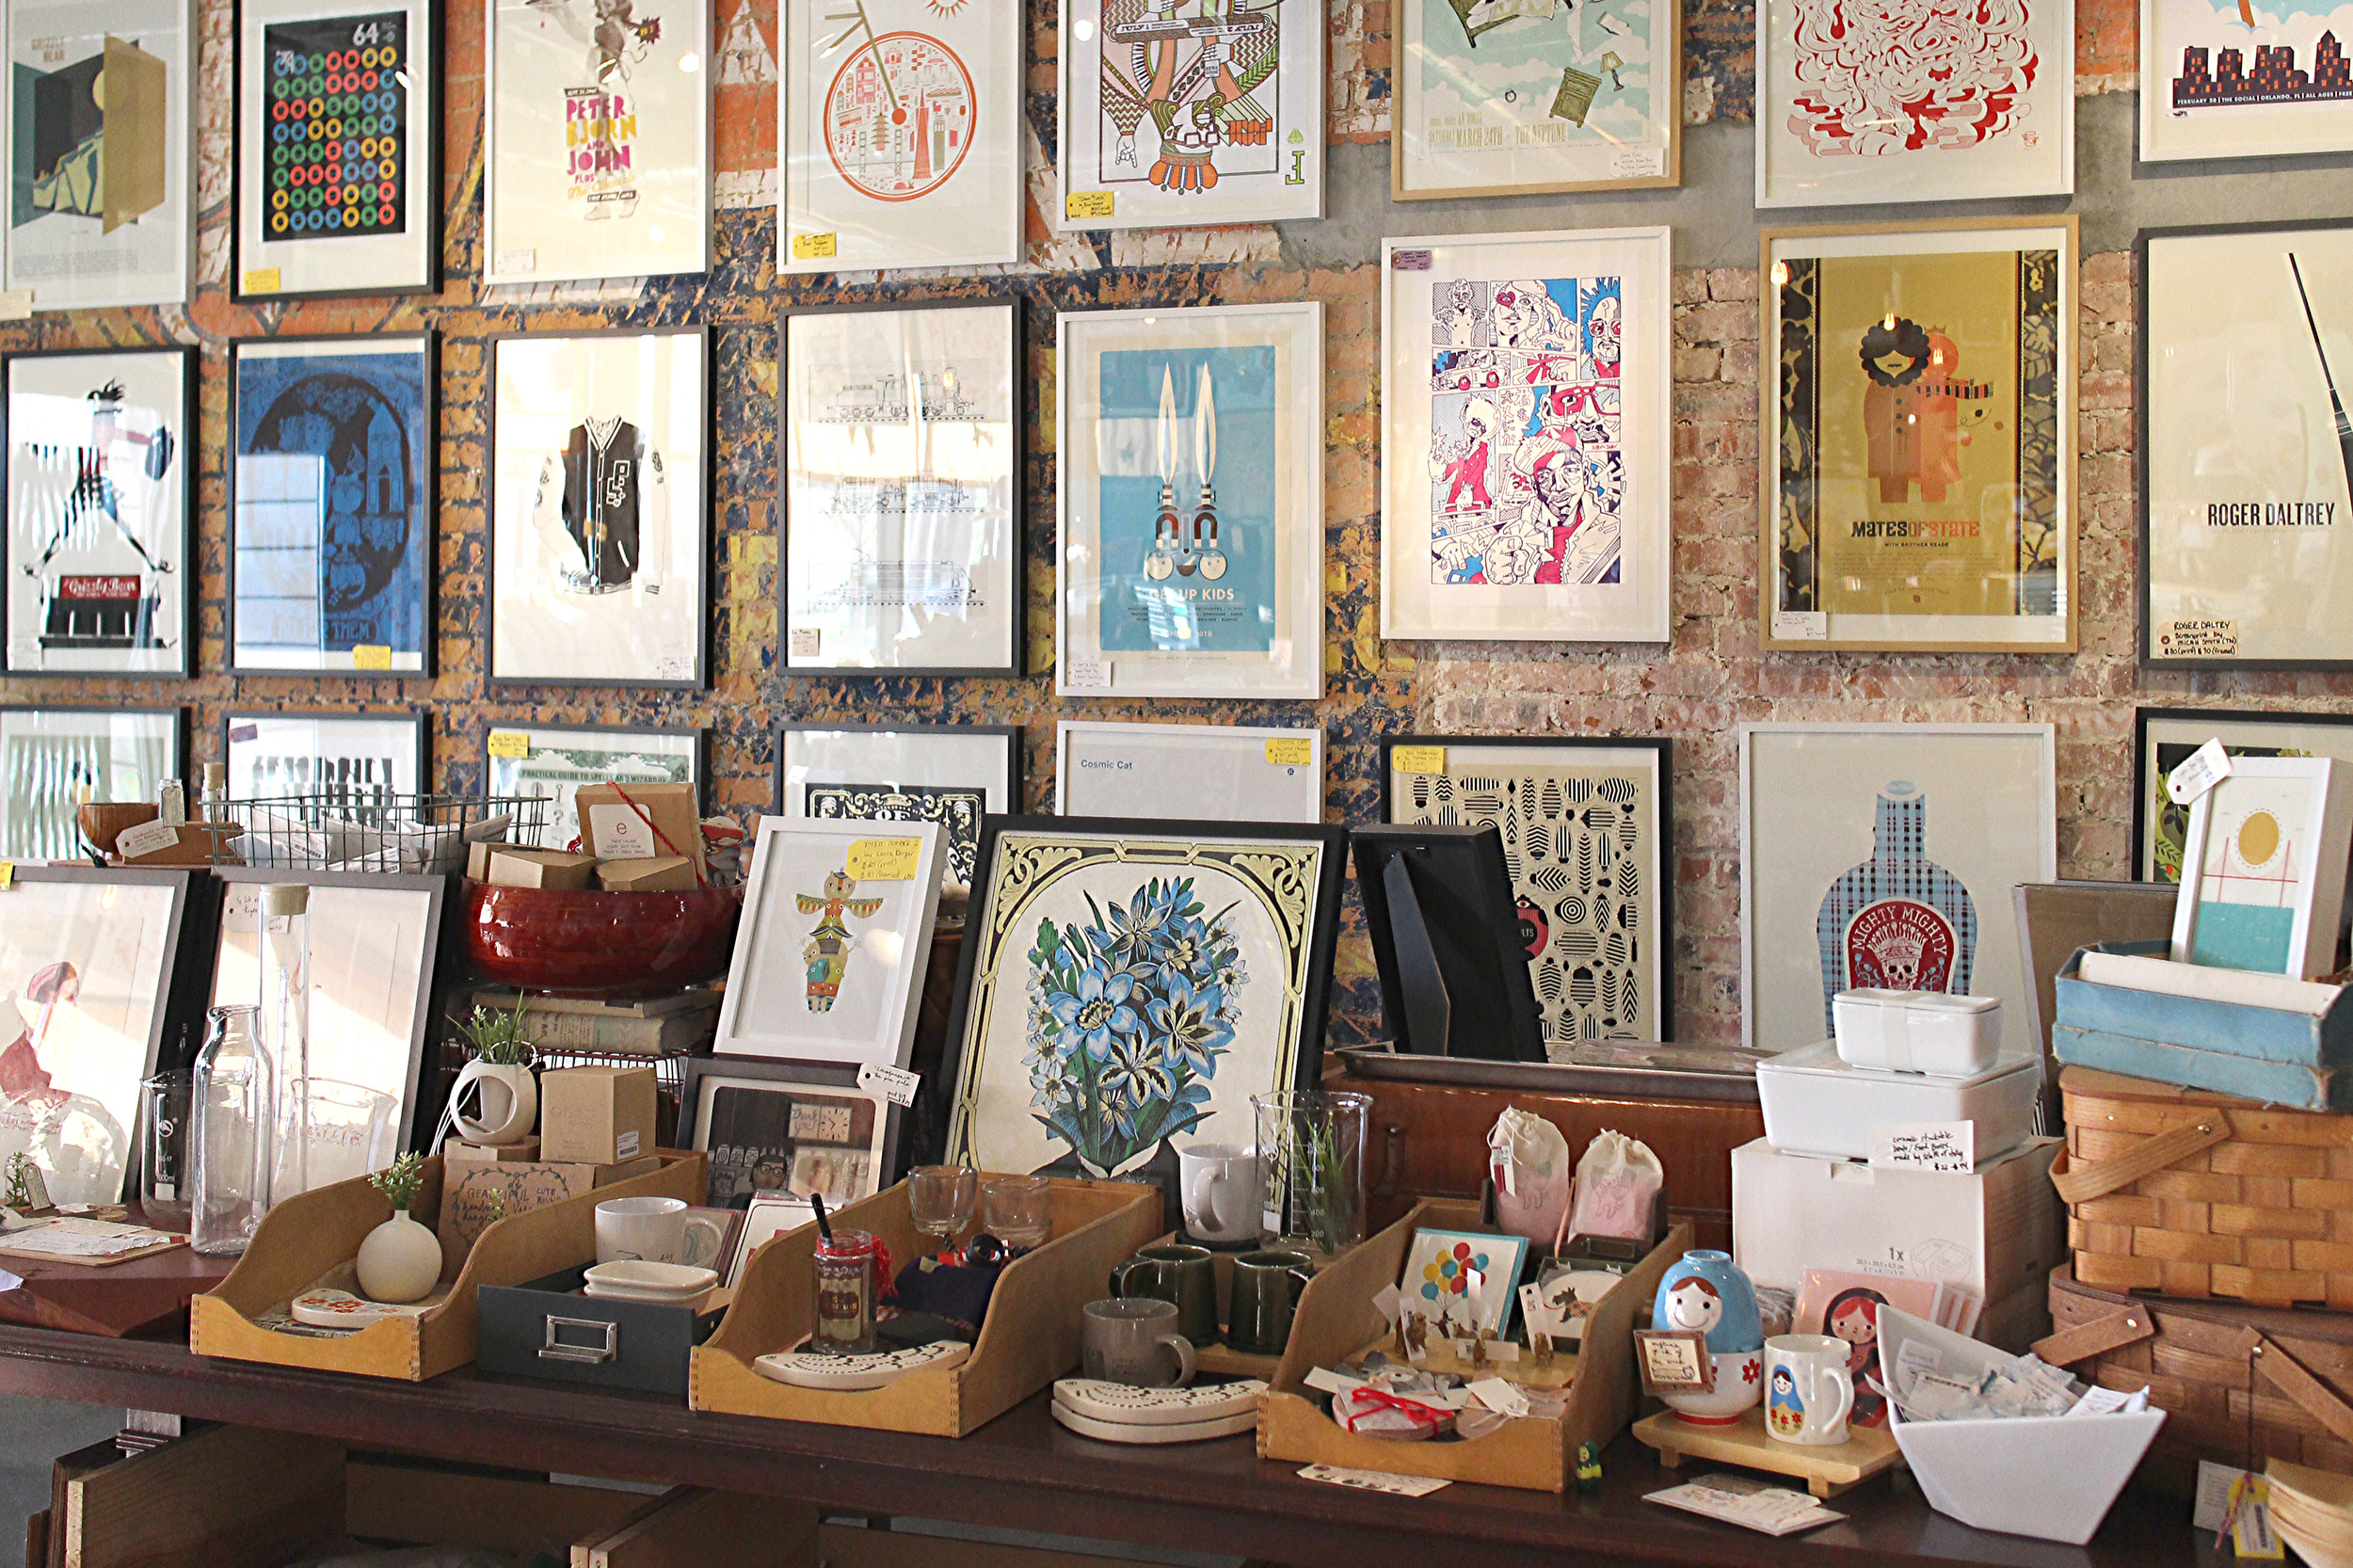 So happy to have some prints and ceramics at this cute shop!